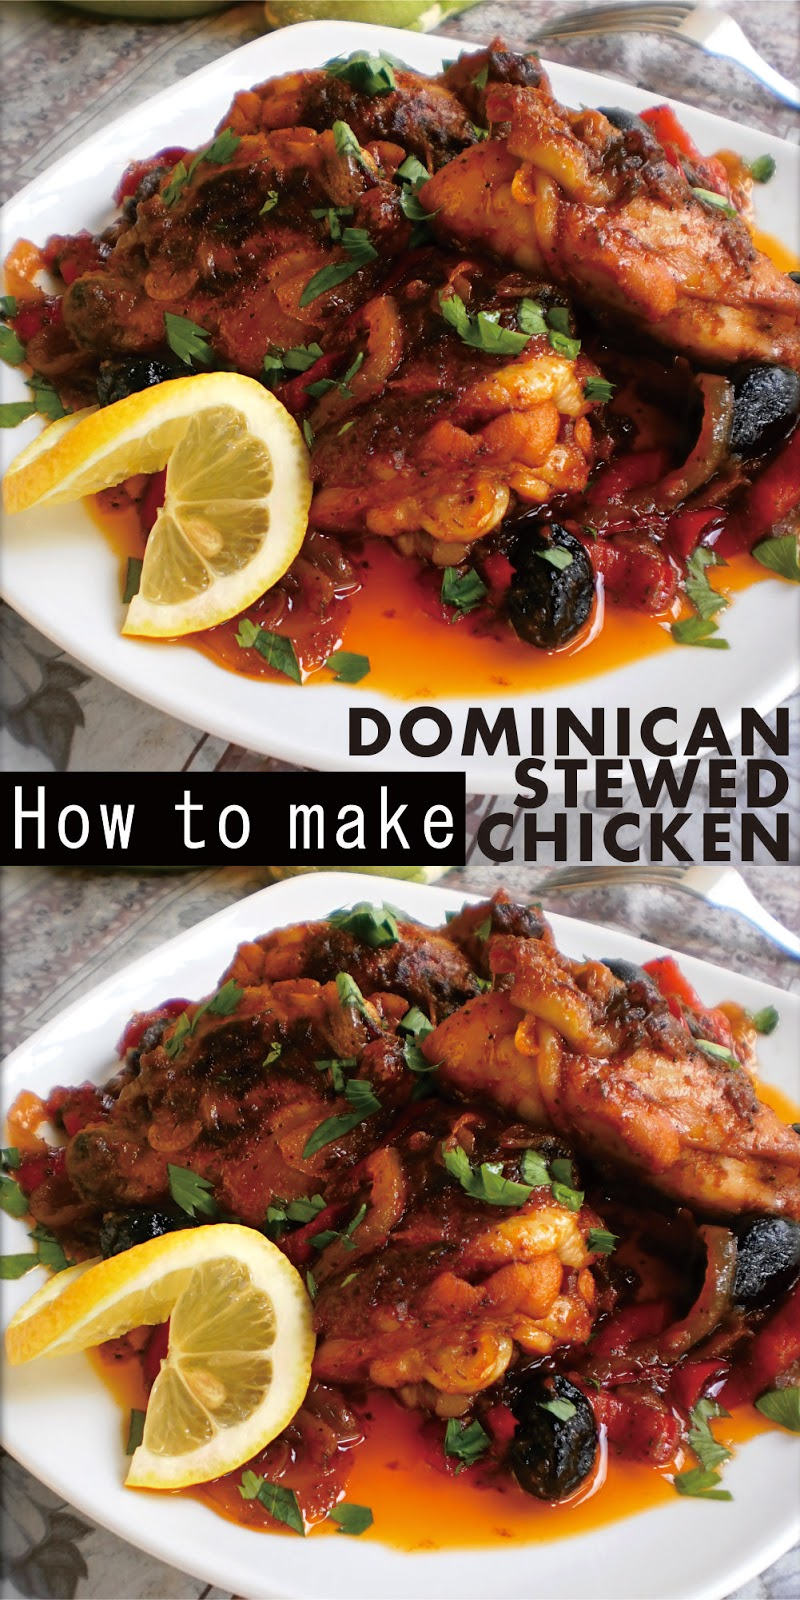 DOMINICAN STEWED CHICKEN / POLLO GUISADO